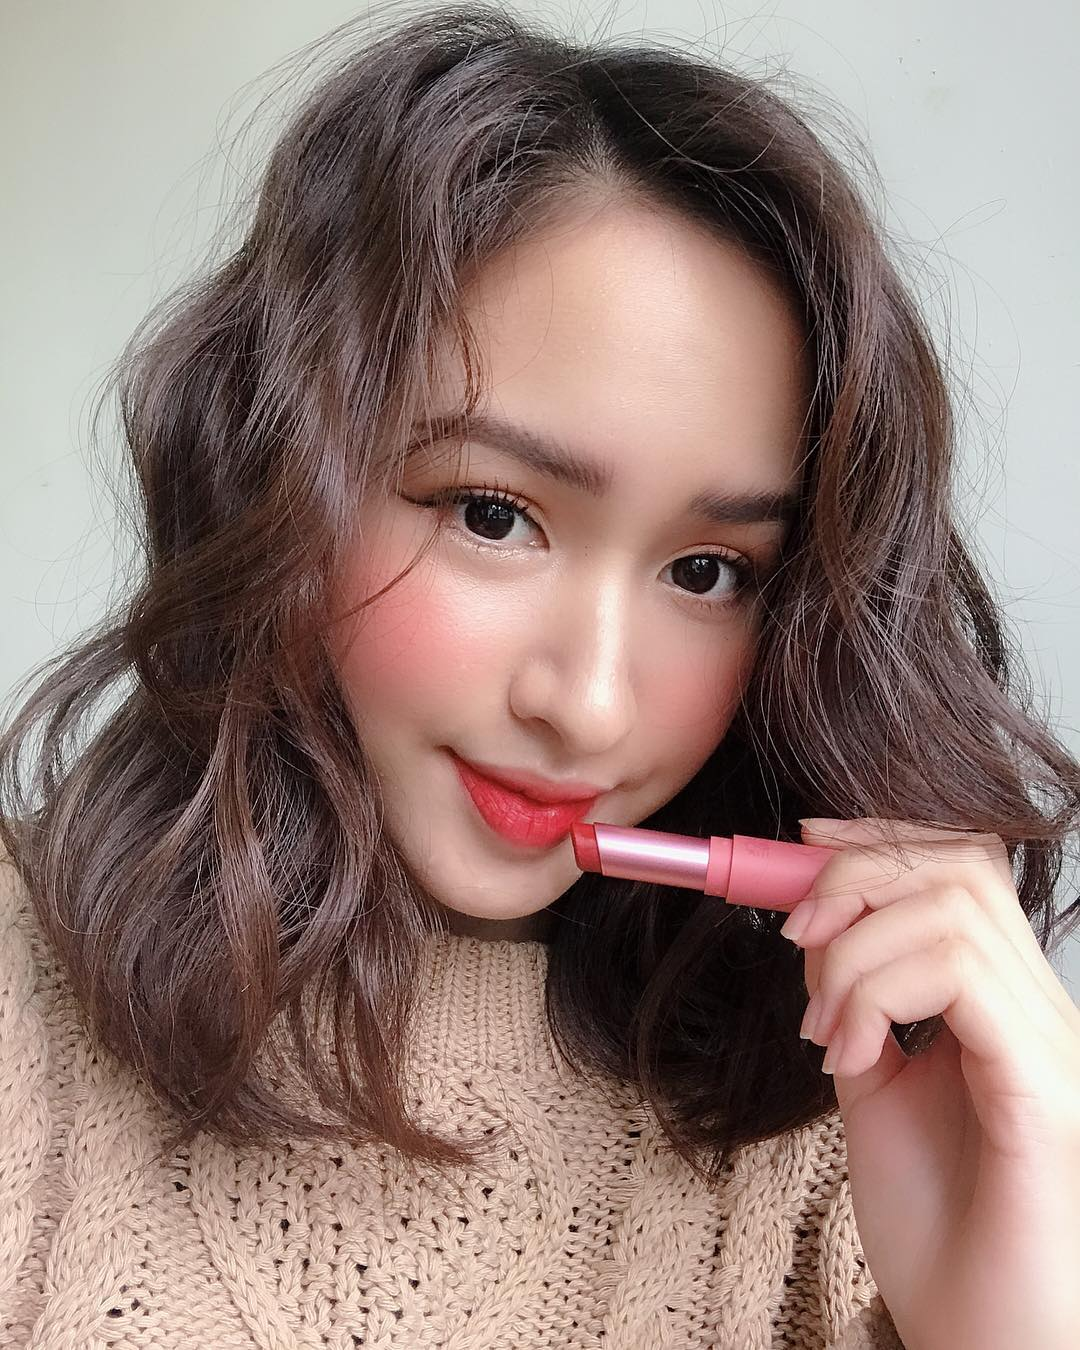 Son Black Rouge Rose Velvet Lipstick - Ảnh: Instagram